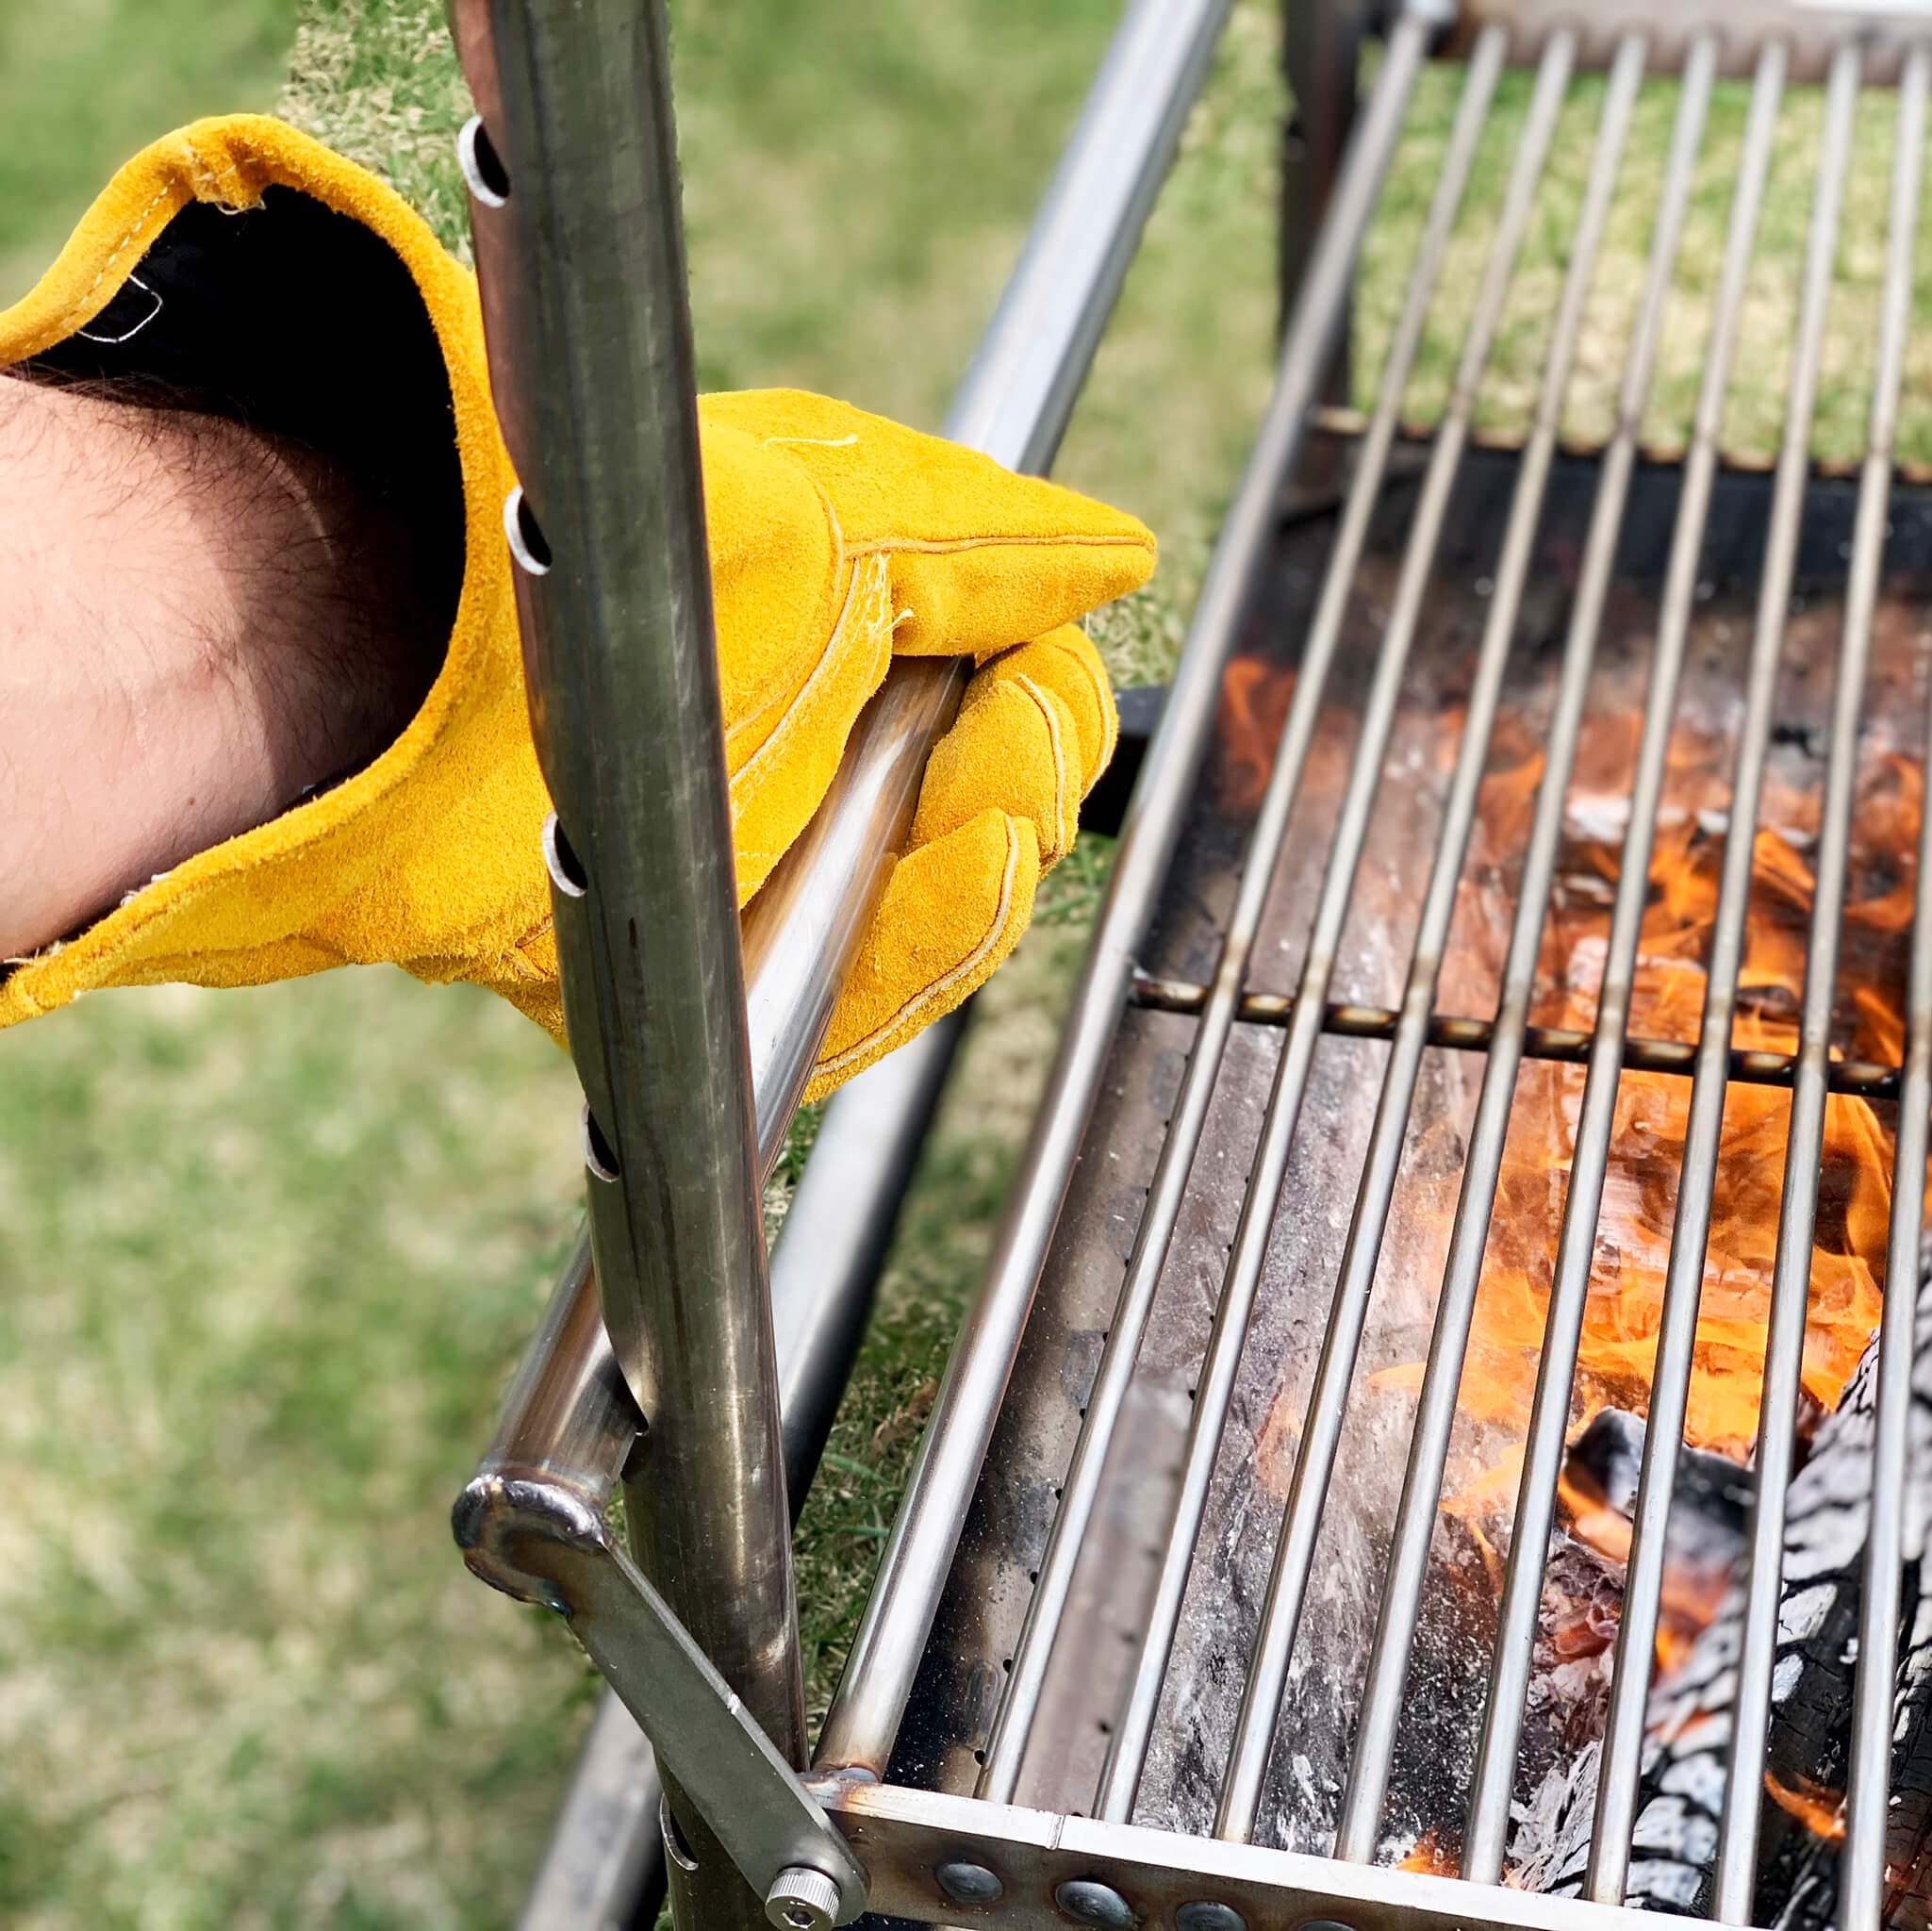 TimberTorch Grilling Kit